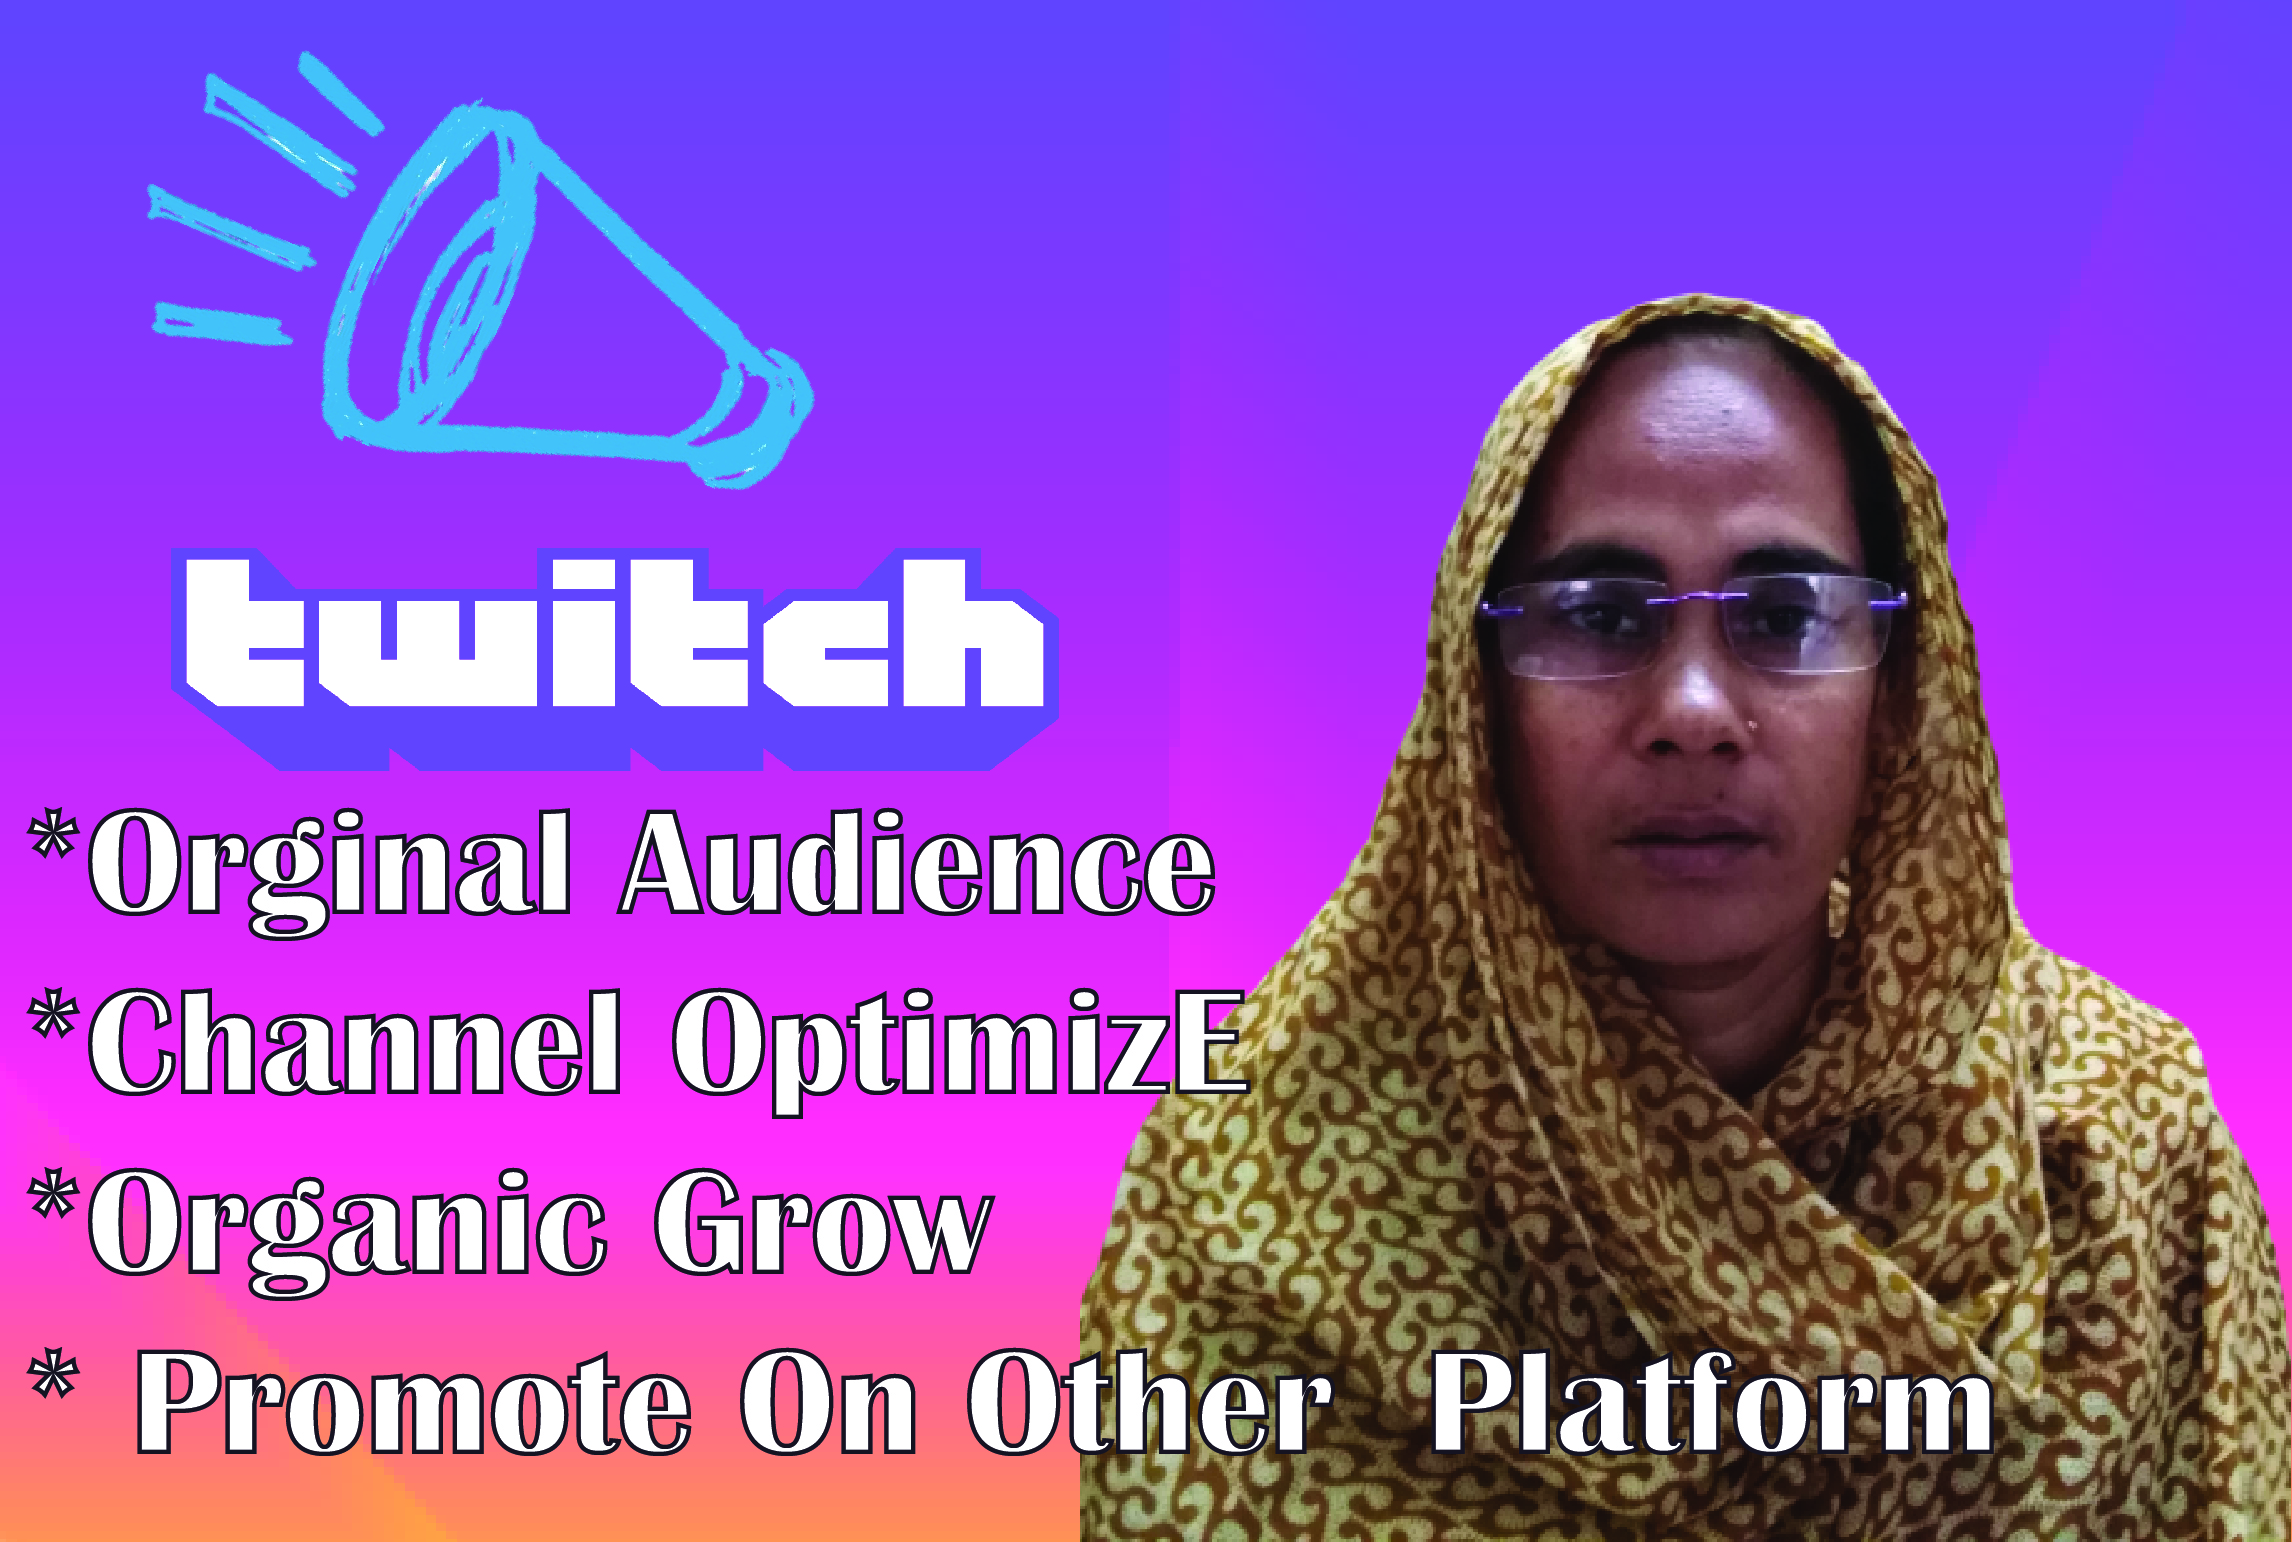 I will promote twitch account and steam to increase regular audience